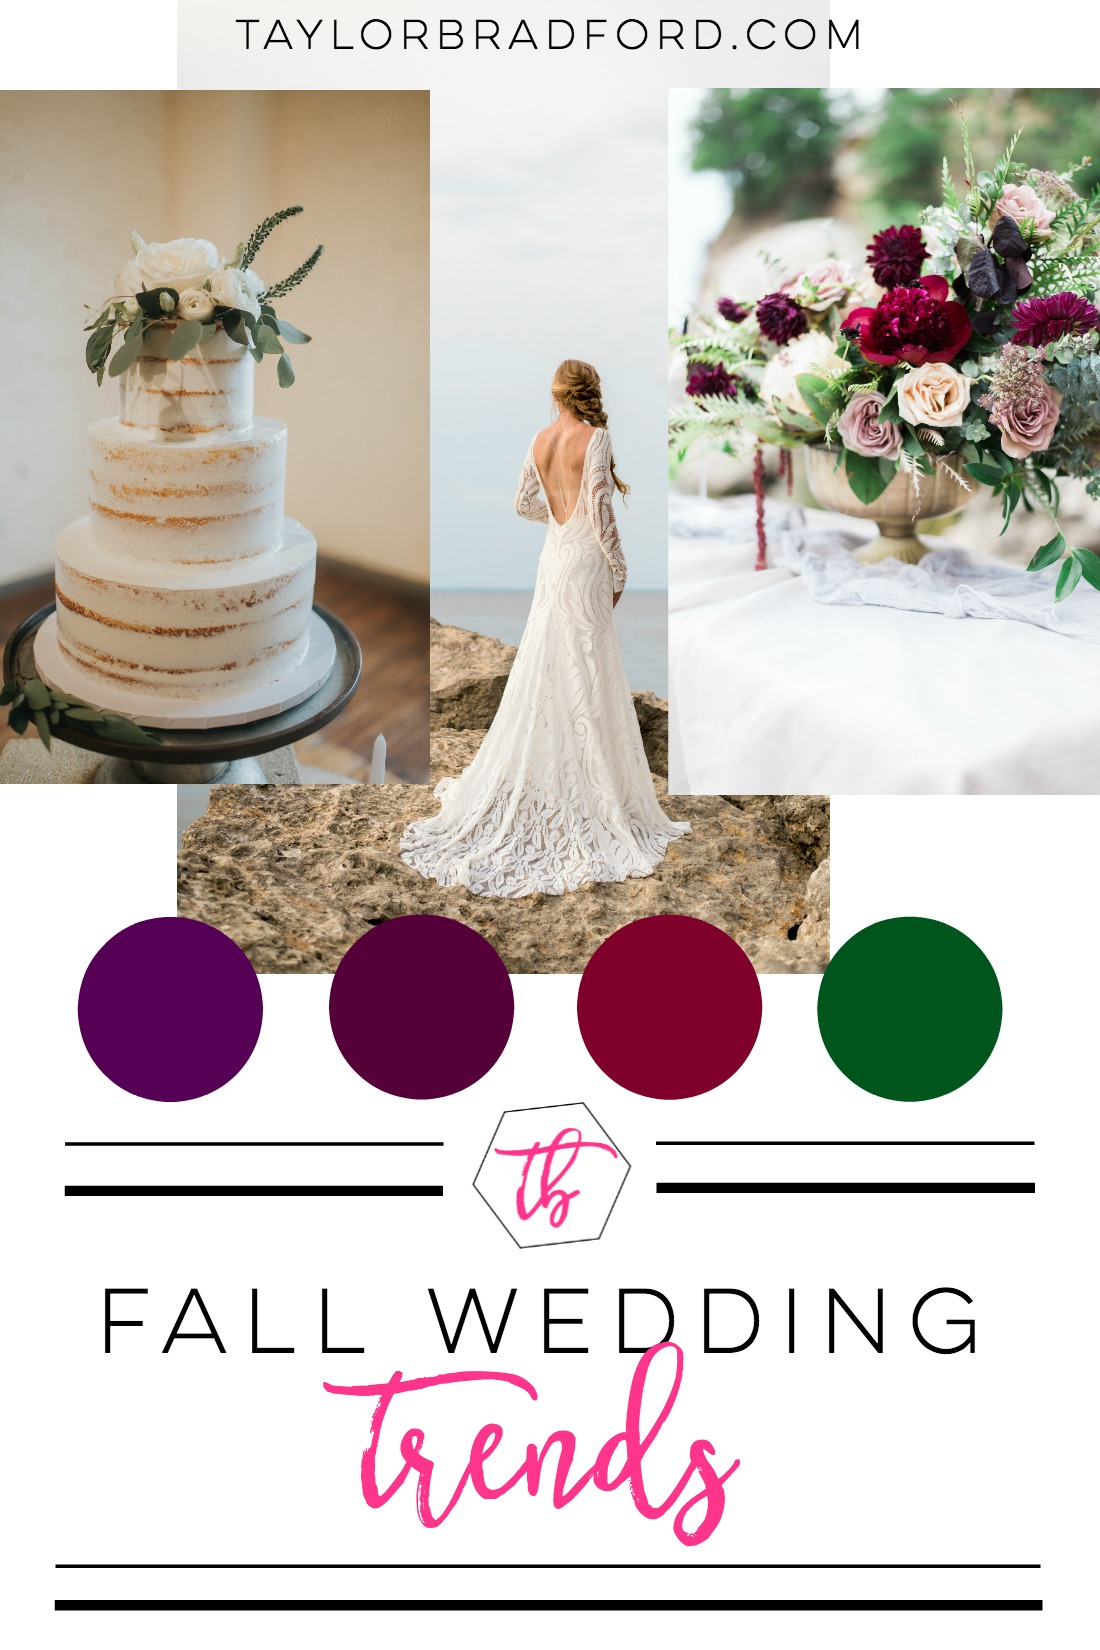 Check out what is trending this fall wedding season with these Fall Wedding Trends.